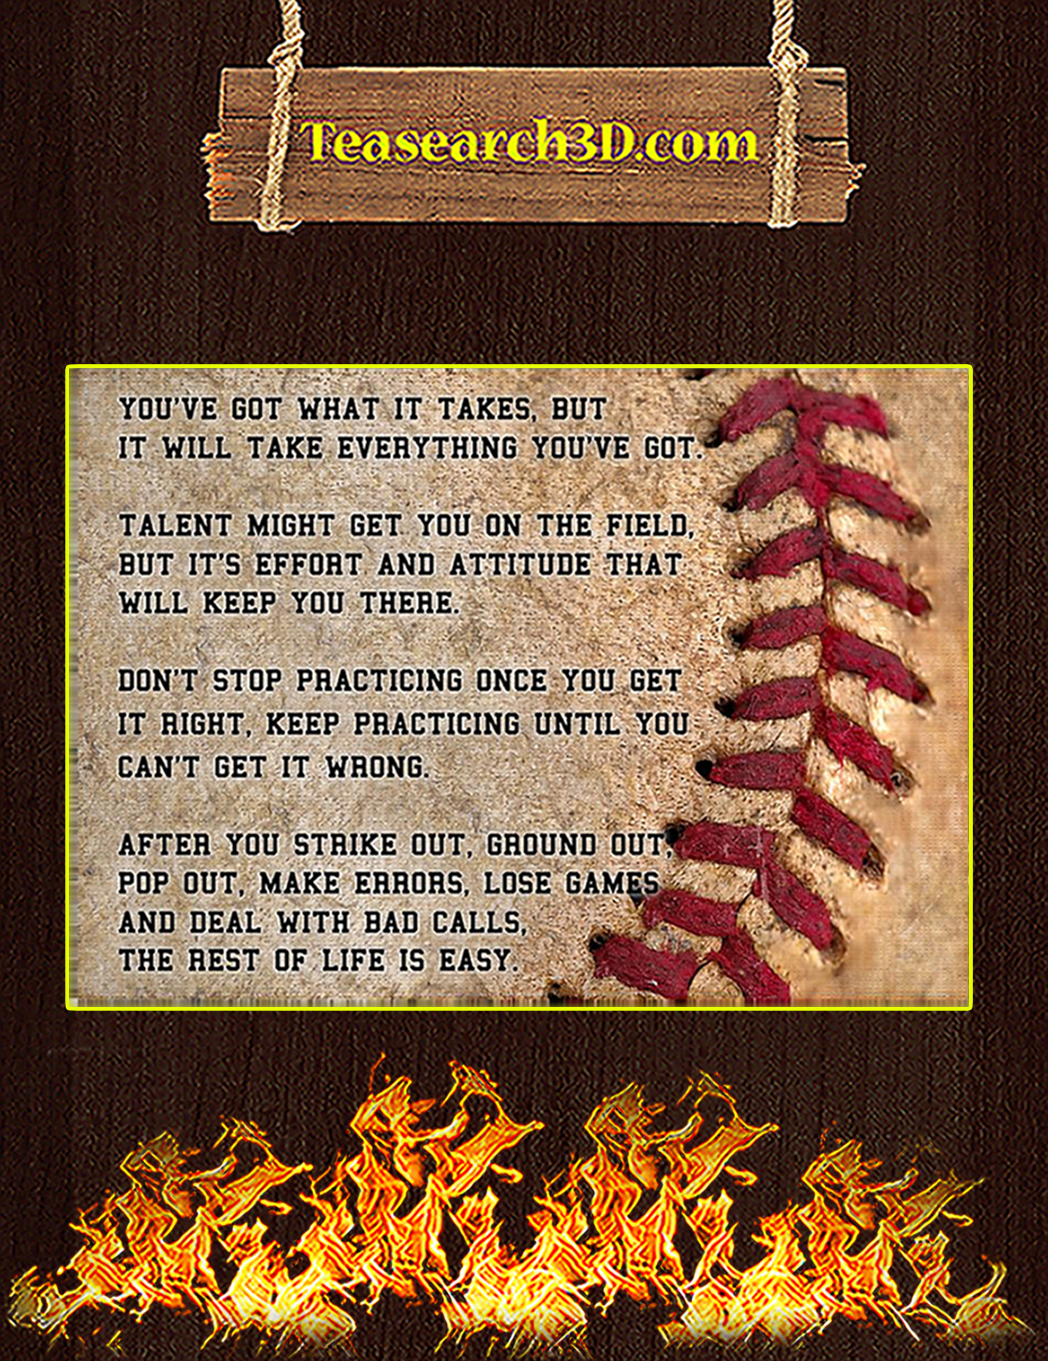 Baseball motivation you got what it takes poster A1